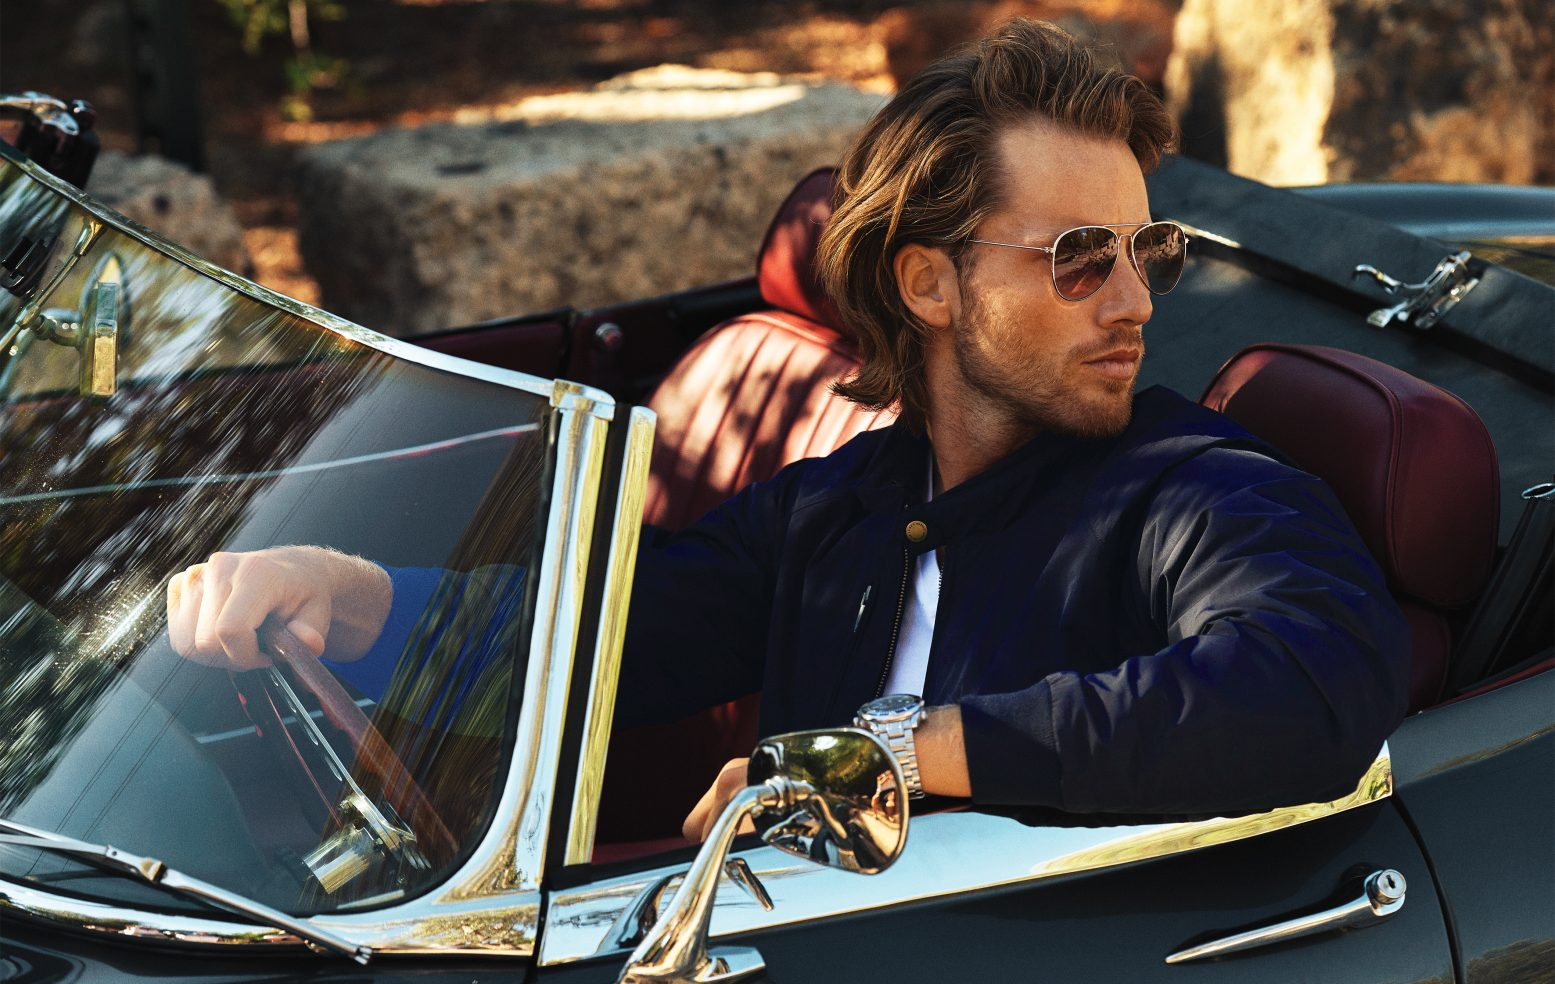 Web_Lifestyle_Harrington_Car